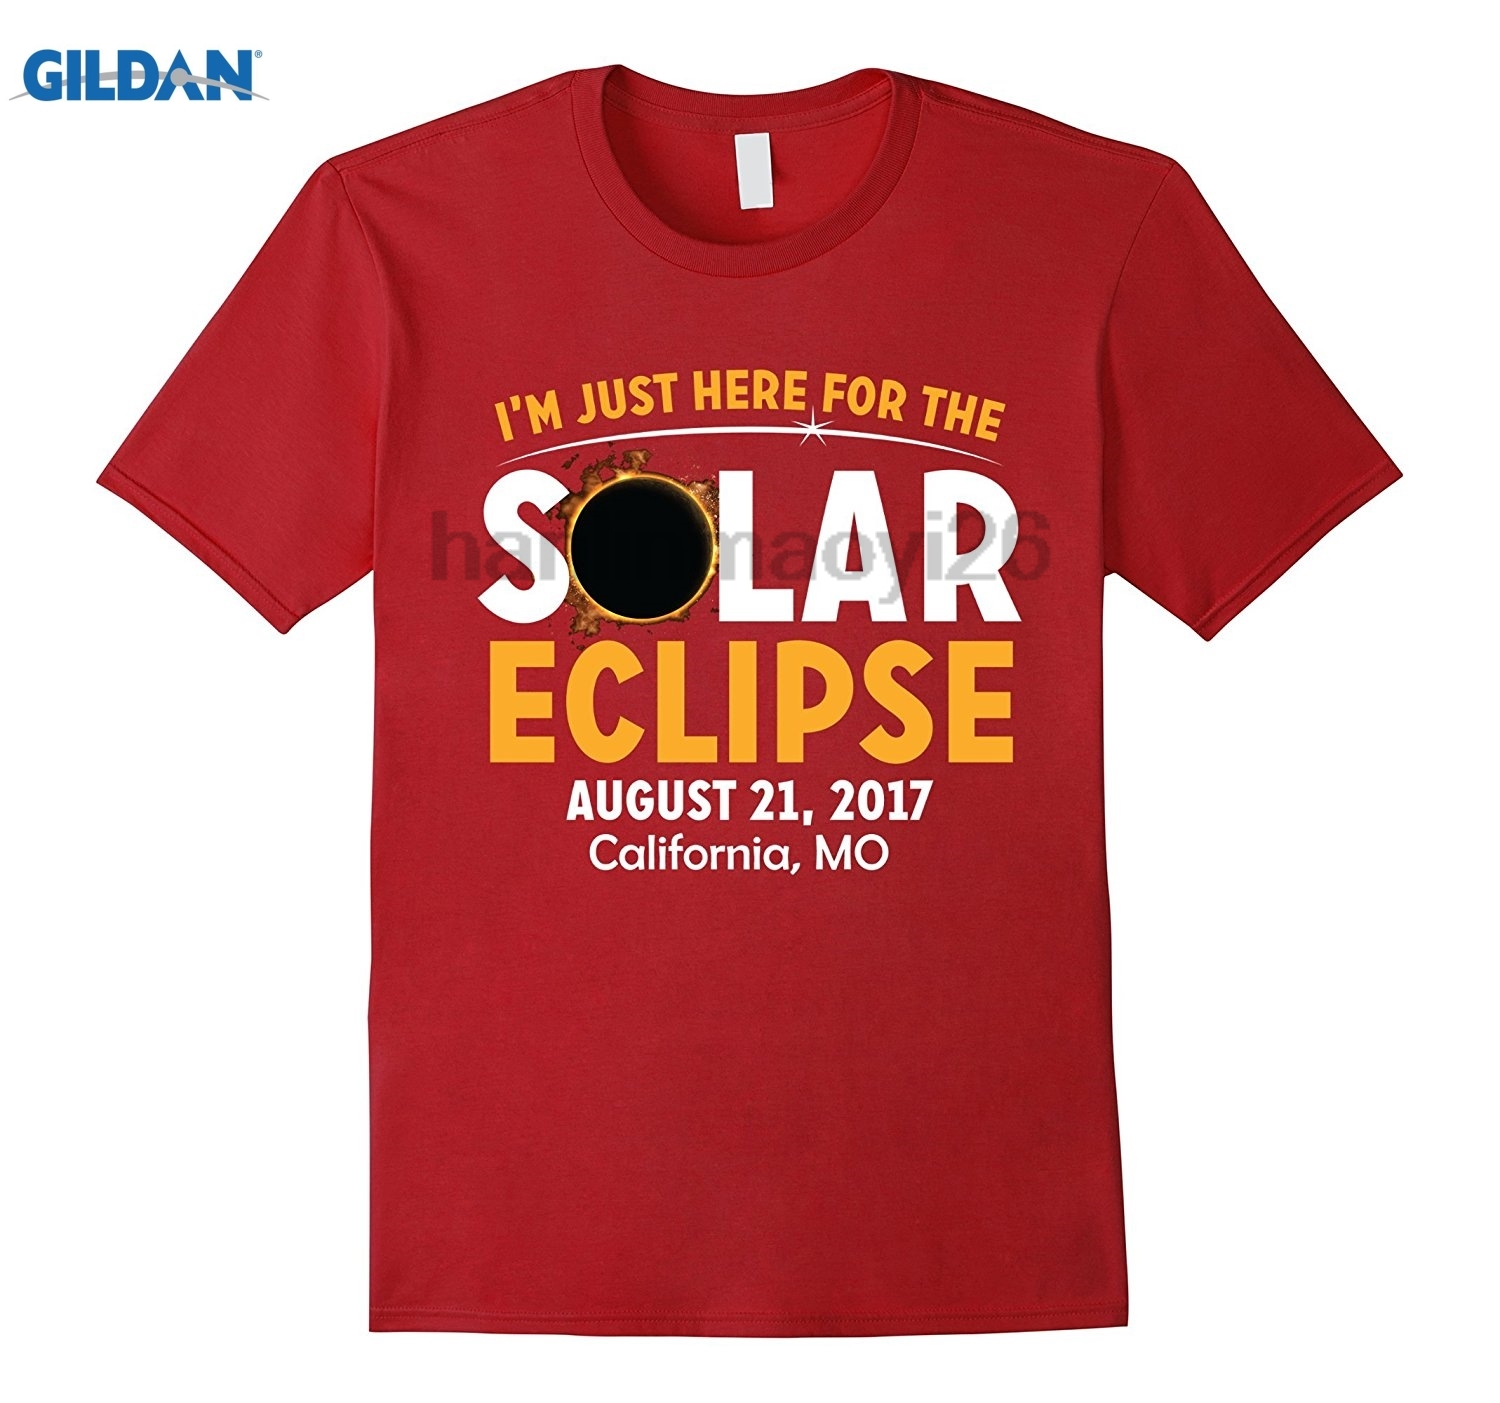 DILDAN Im Just Here for the Solar Eclipse T-Shirt California, MO